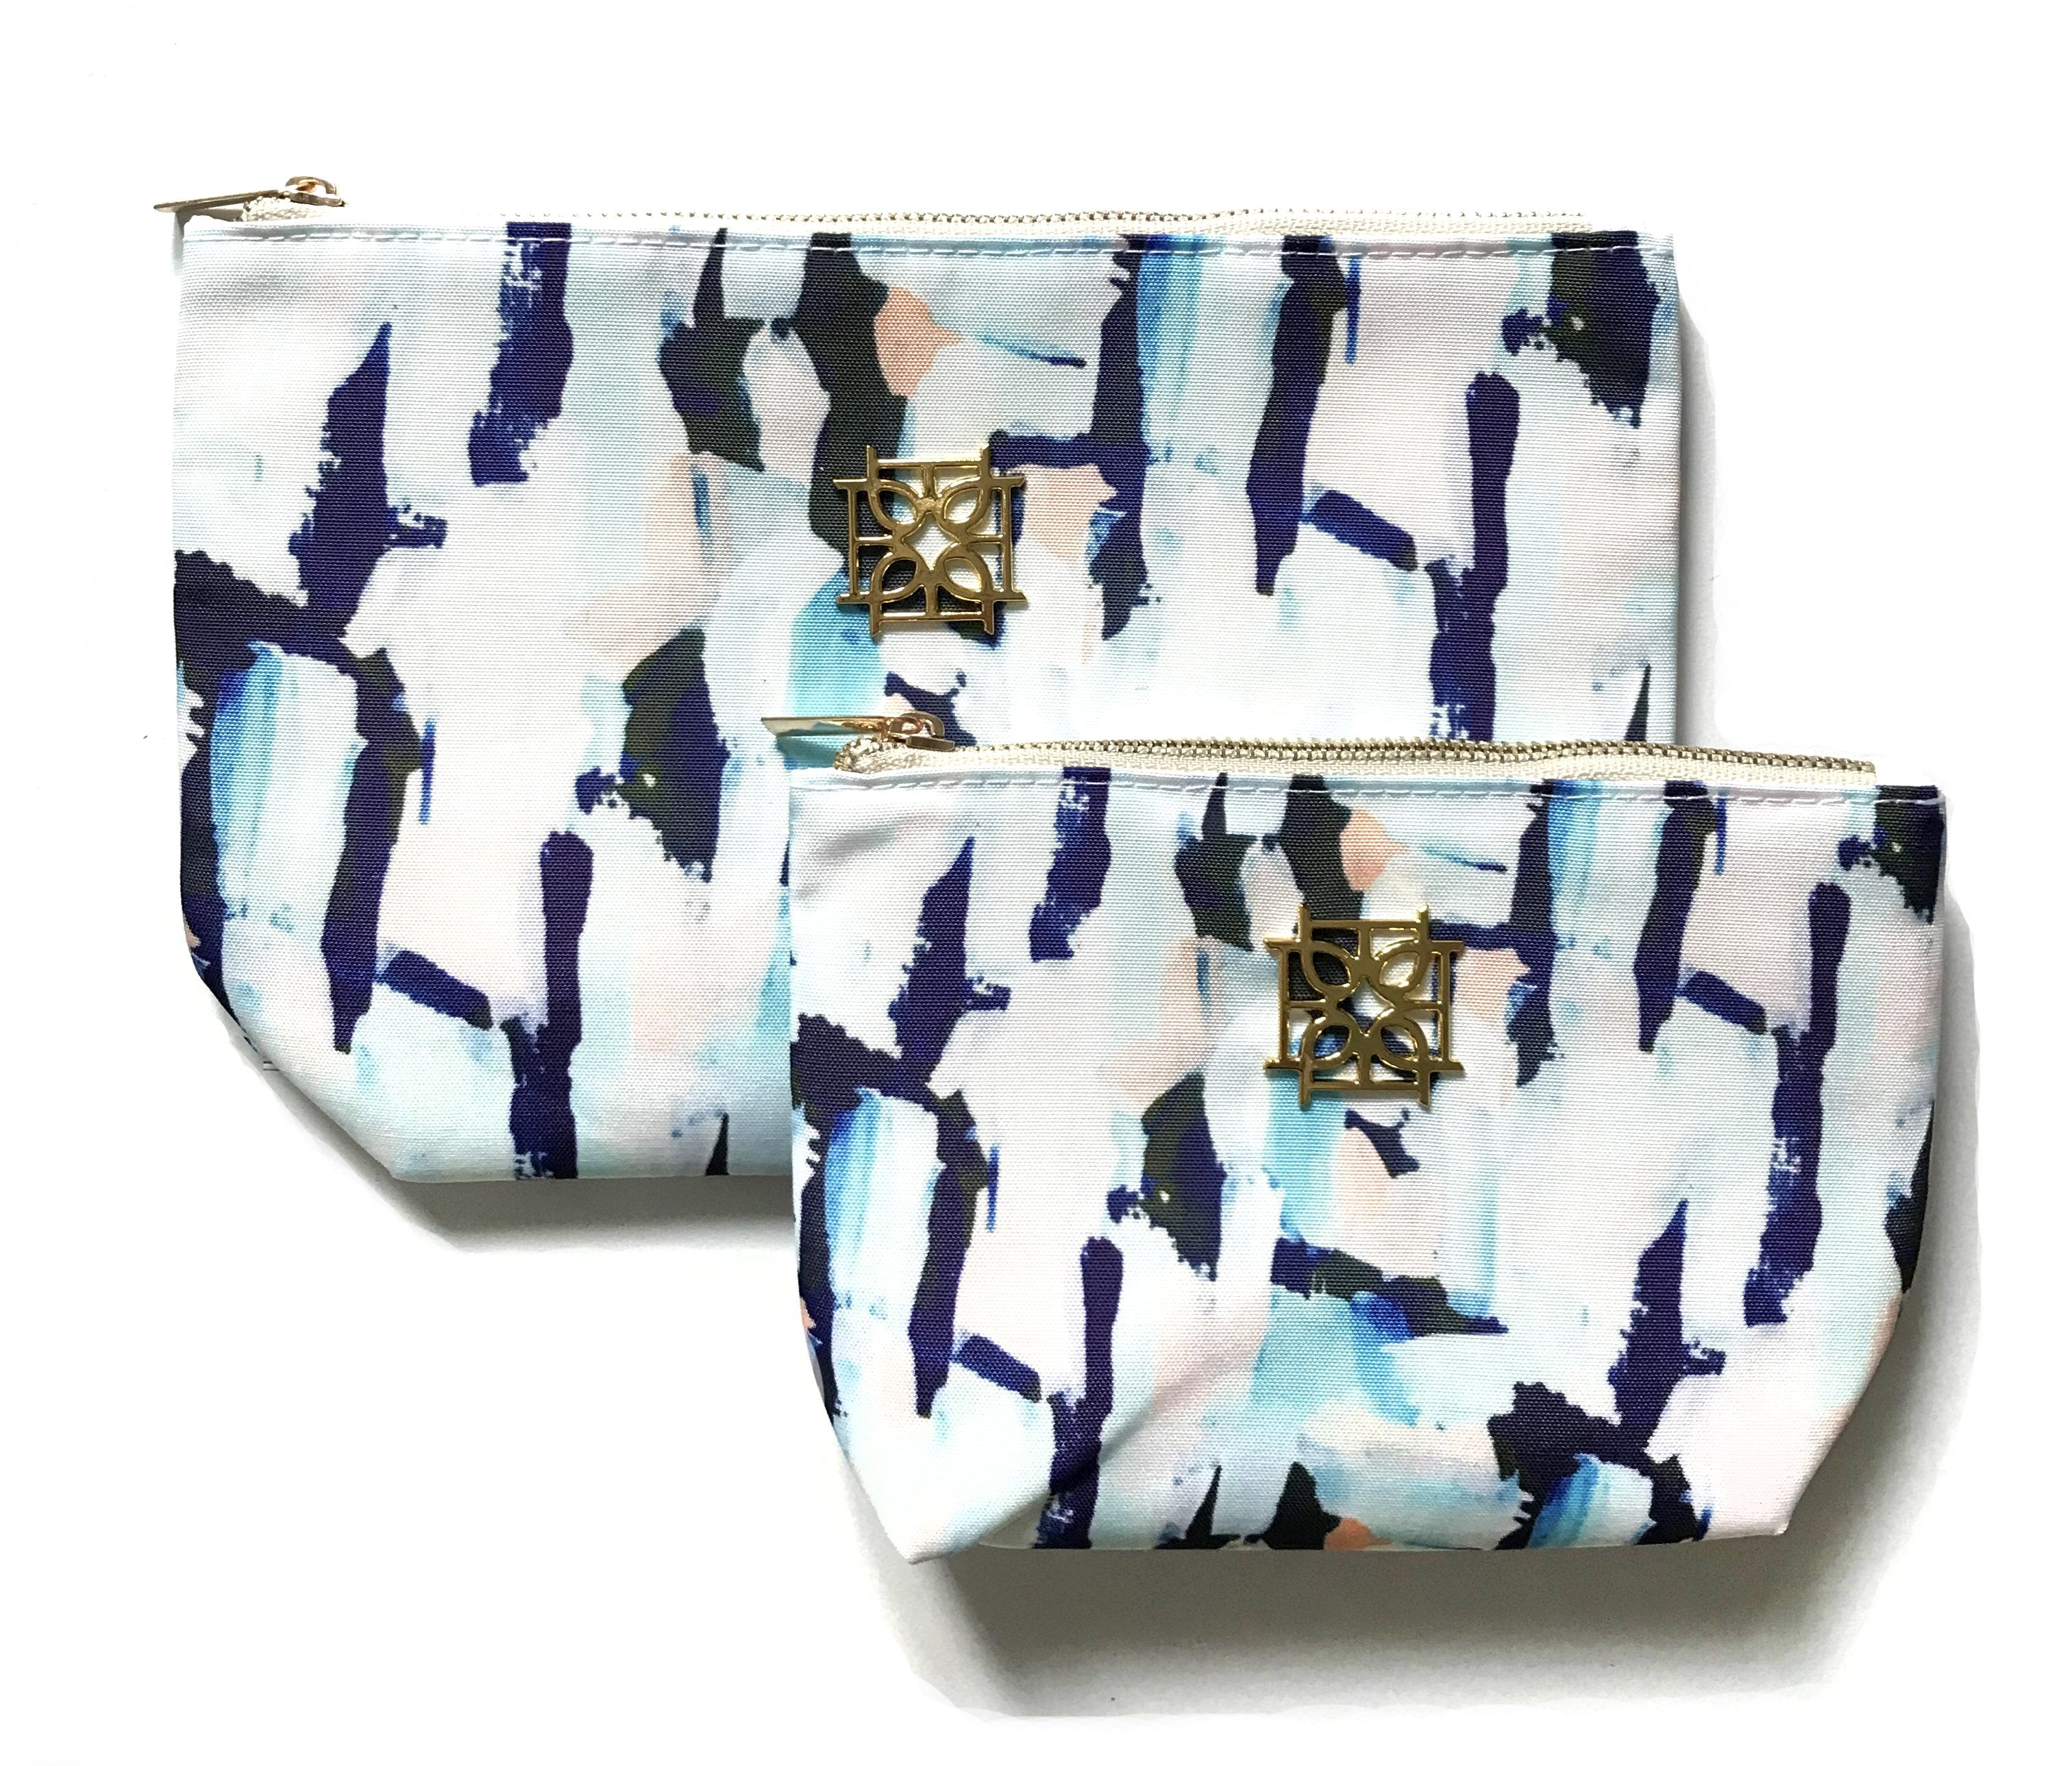 Moon and Lola - Blush Label Cosmetic Bag in Tilda print